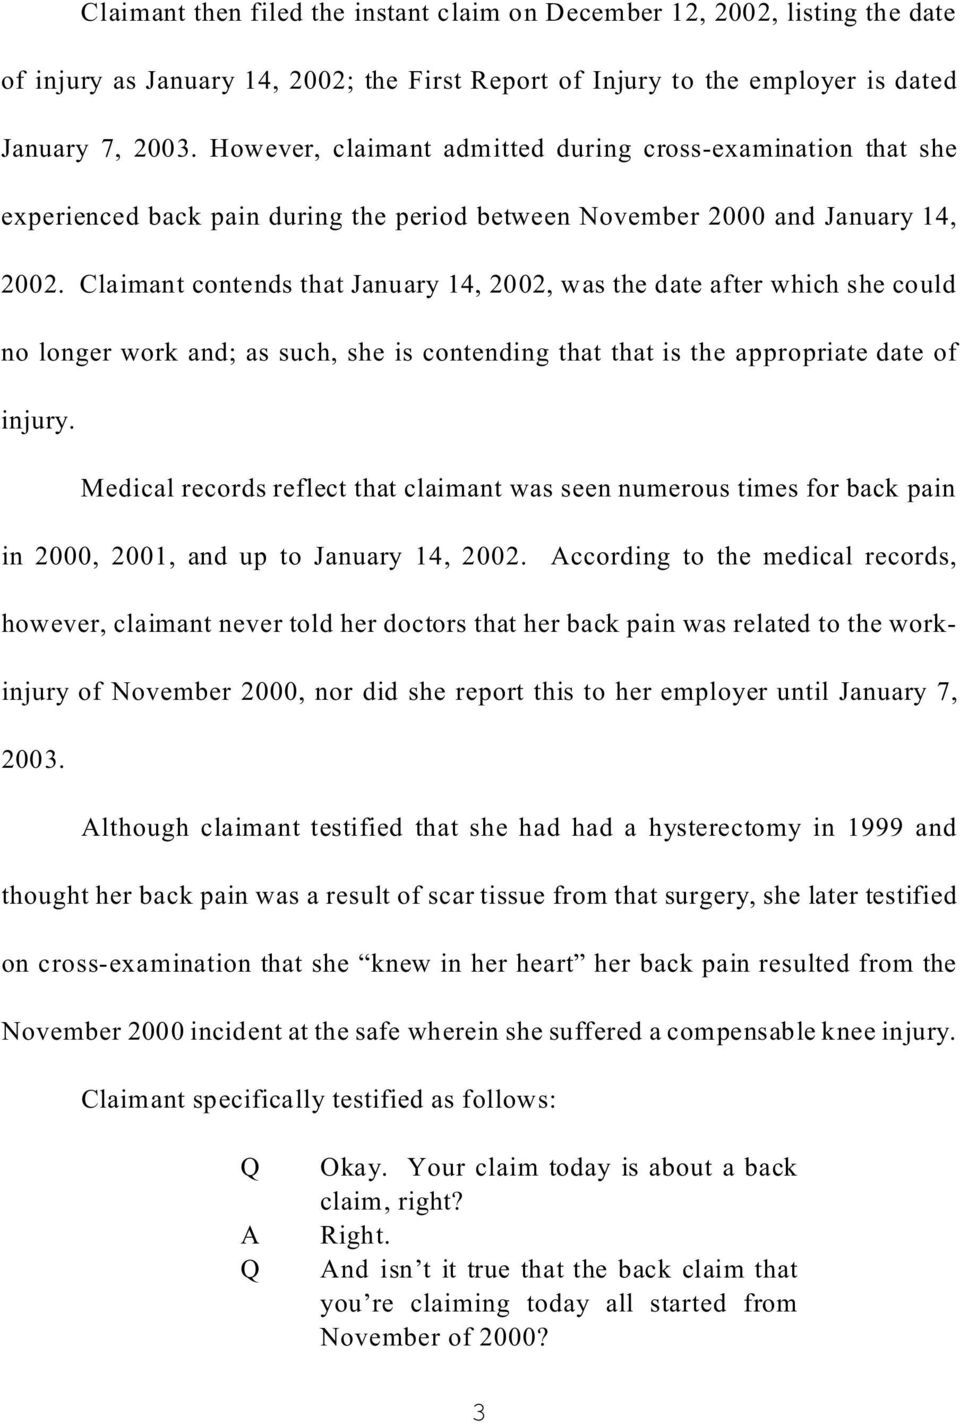 Claimant contends that January 14, 2002, was the date after which she could no longer work and; as such, she is contending that that is the appropriate date of injury.